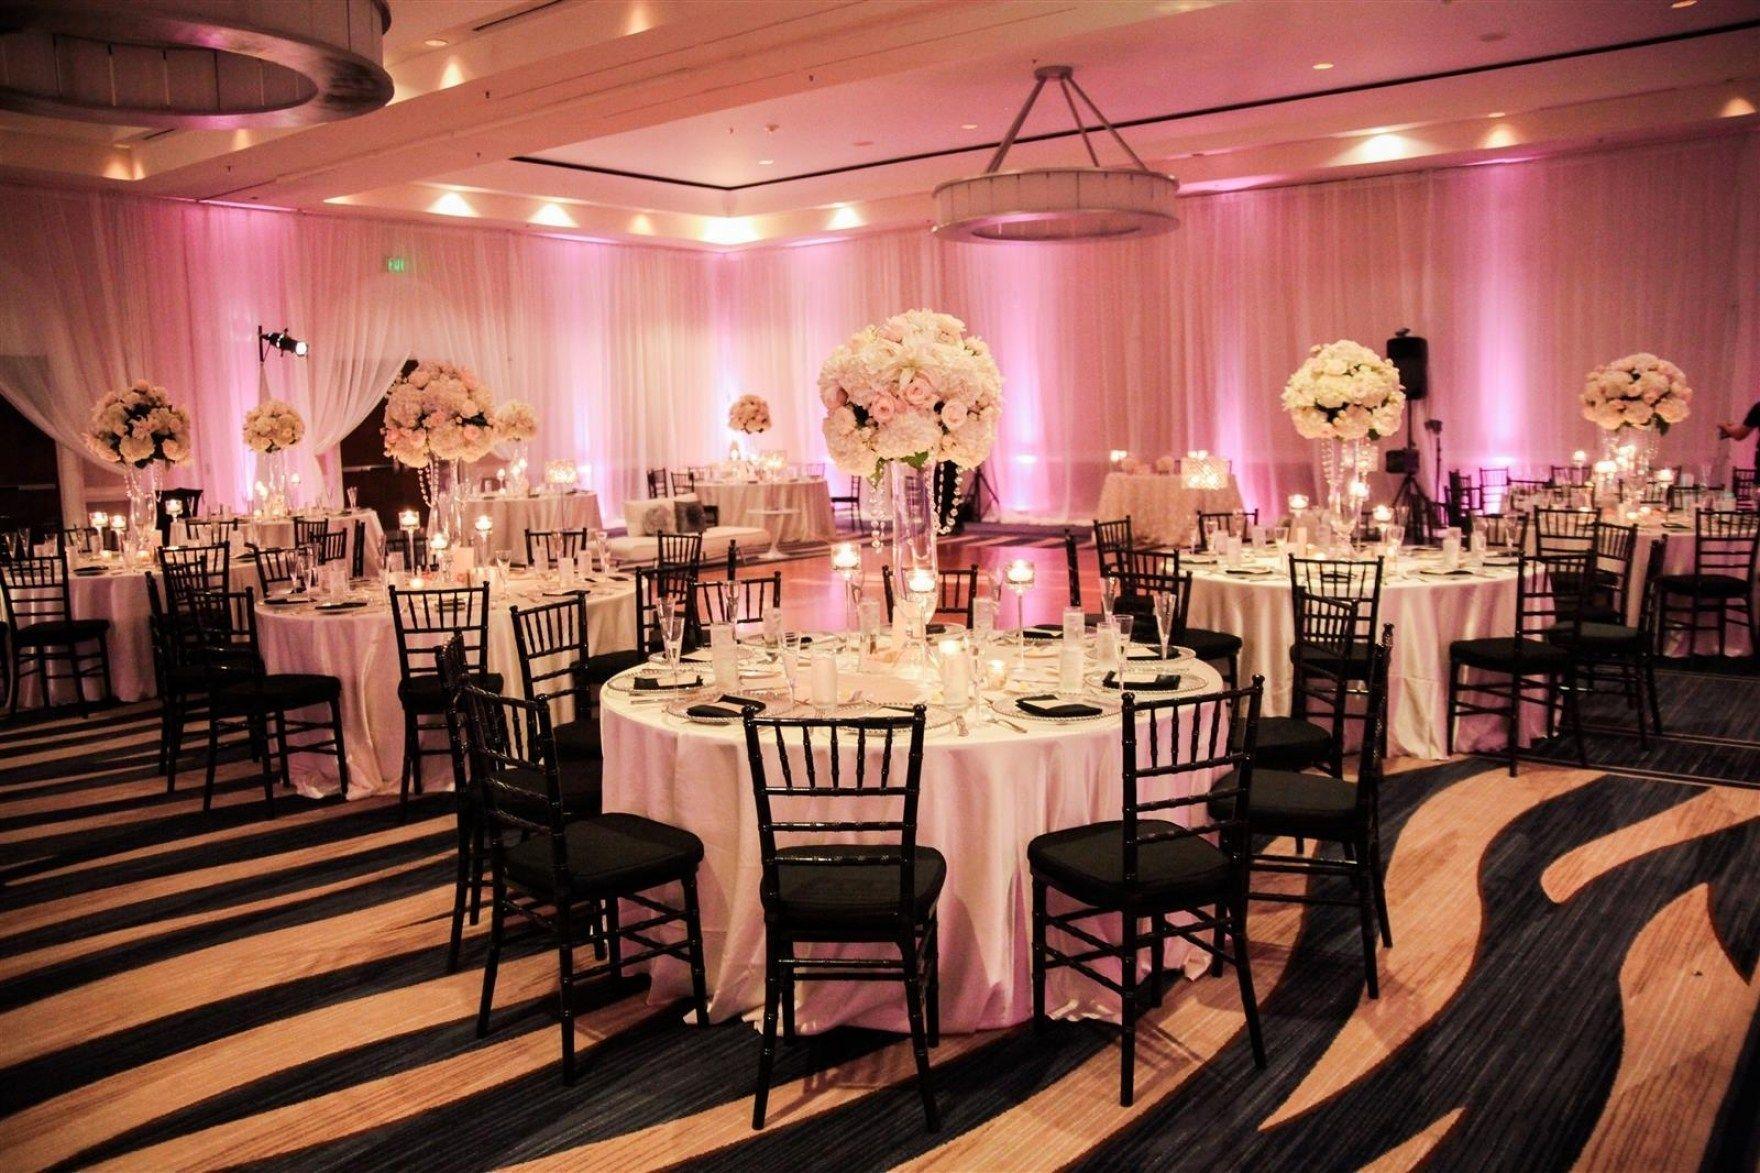 31 Pink And Black Wedding Decorations For The Reception   Reception ...